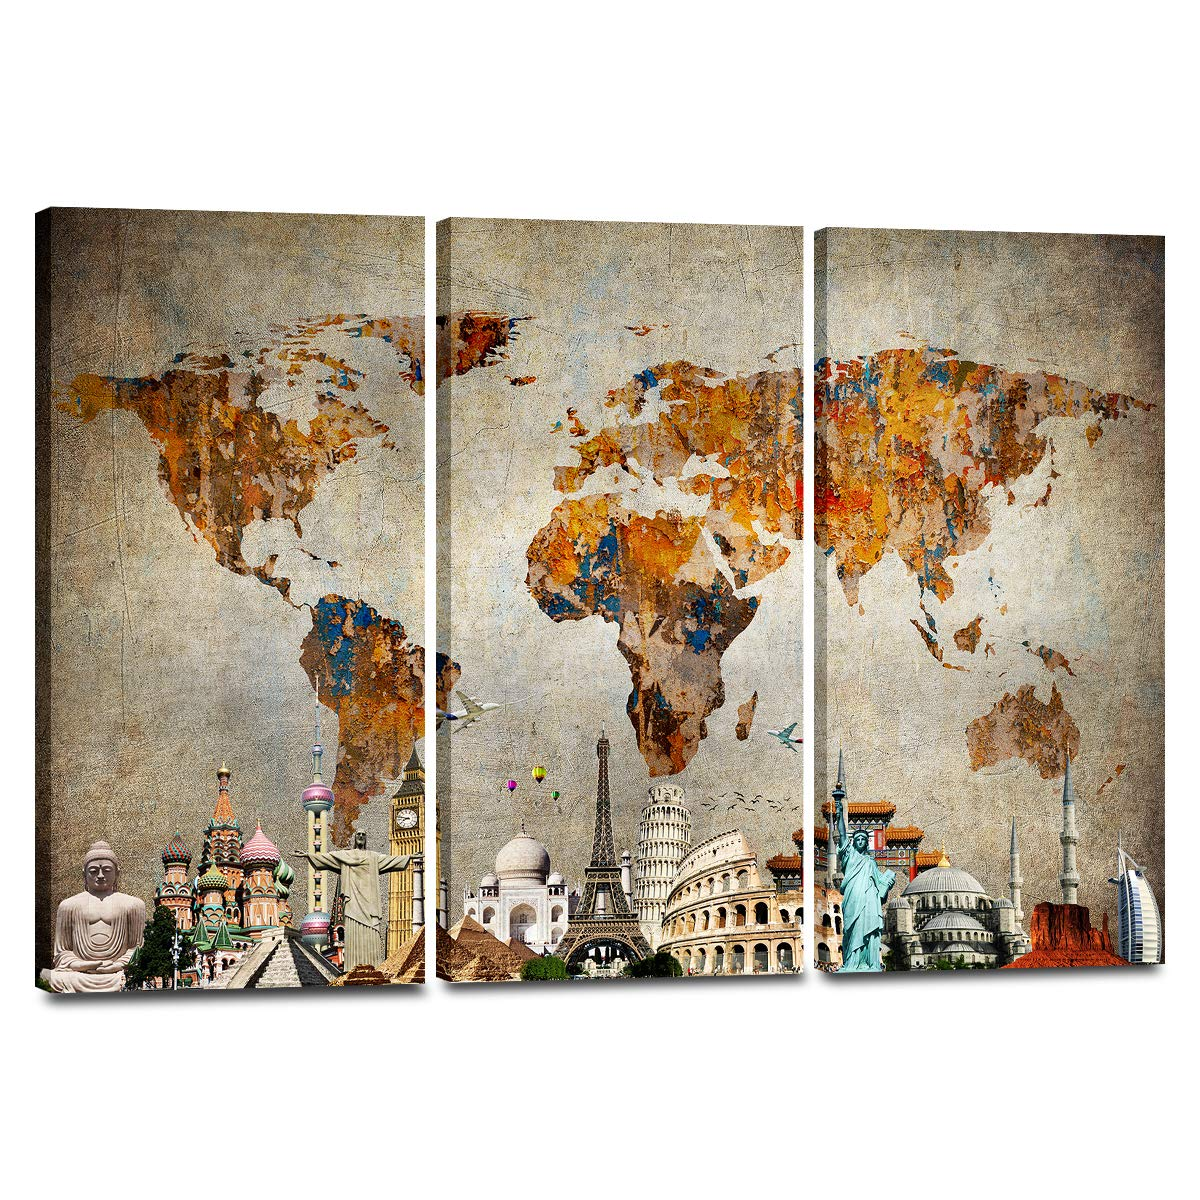 Global Gallery Courtney Prahl Nautical Collage II Canvas Artwork 30 x 30